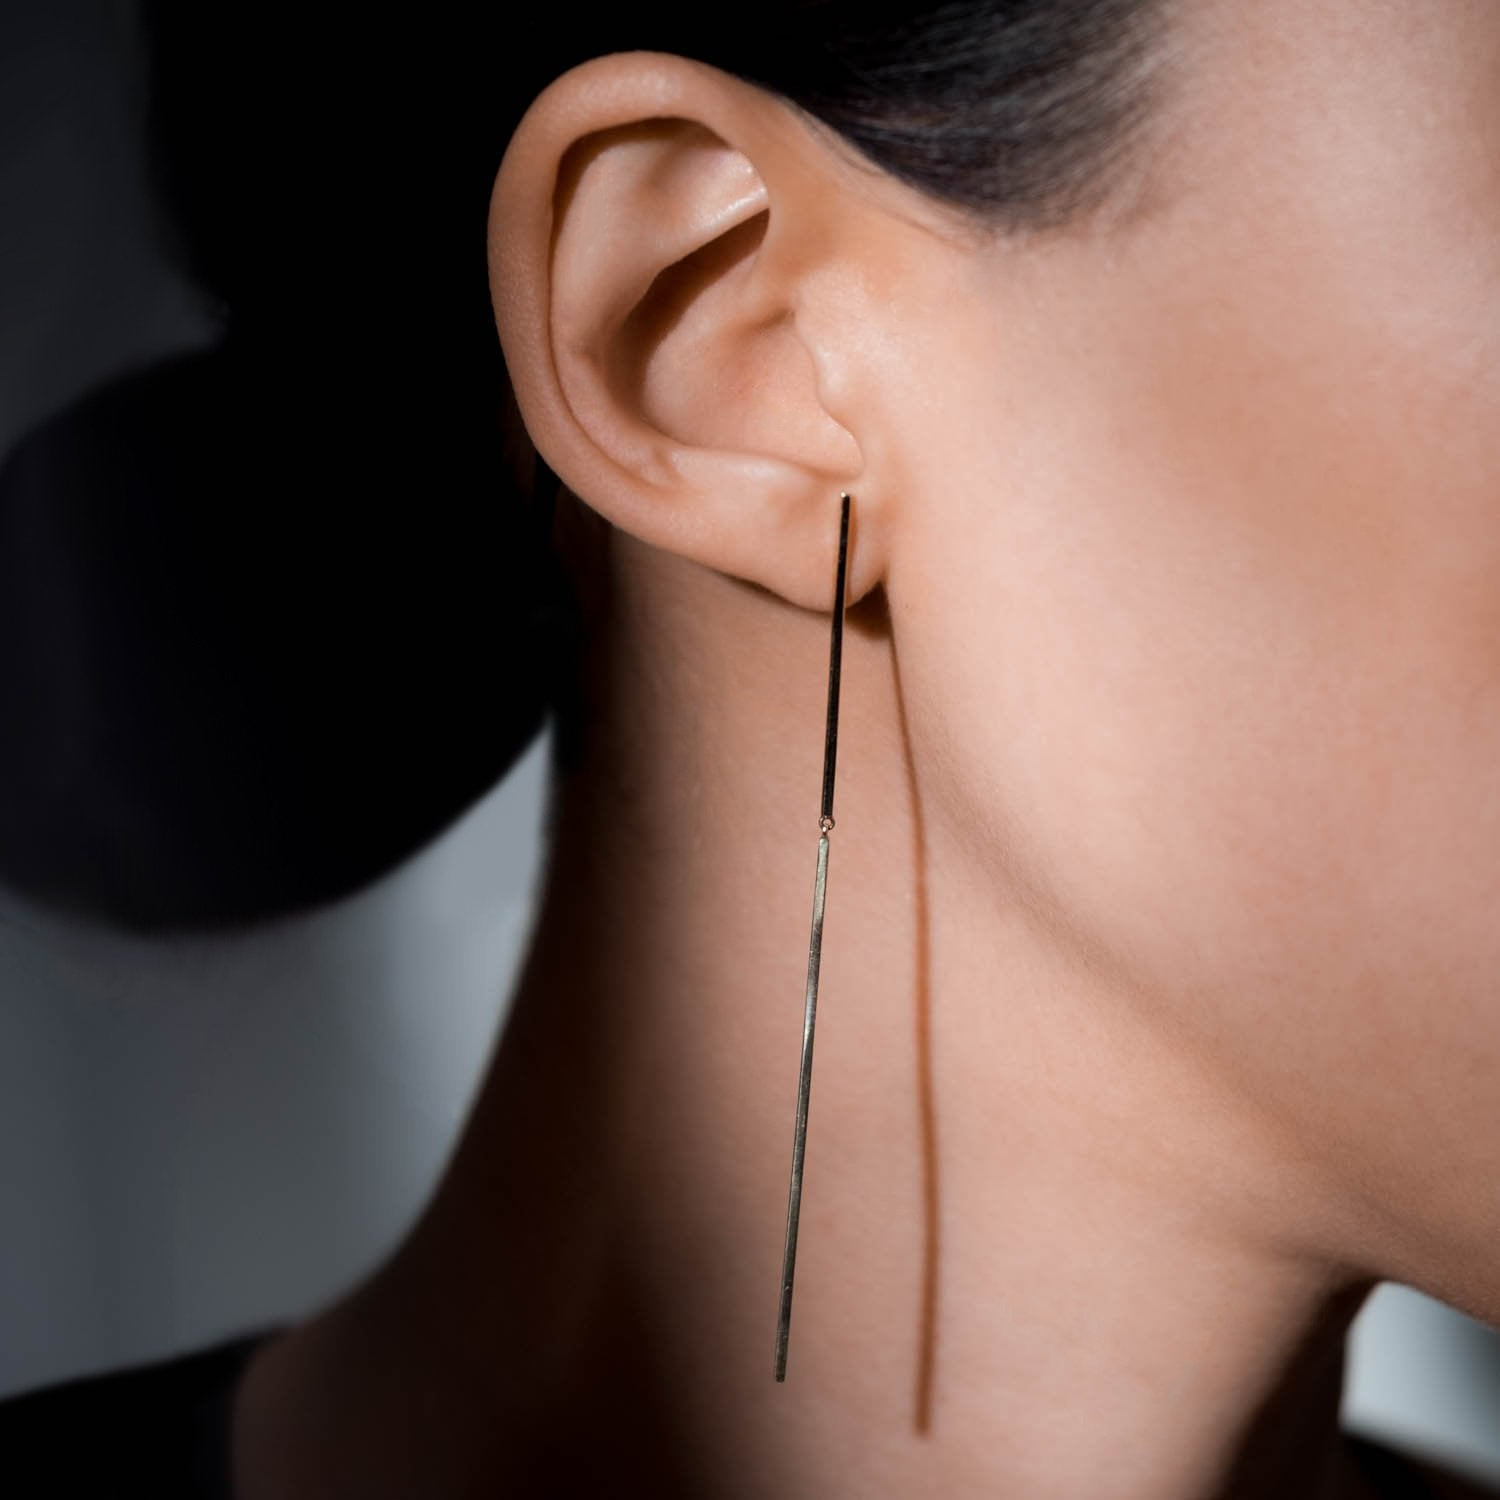 Jointed Linear Earring